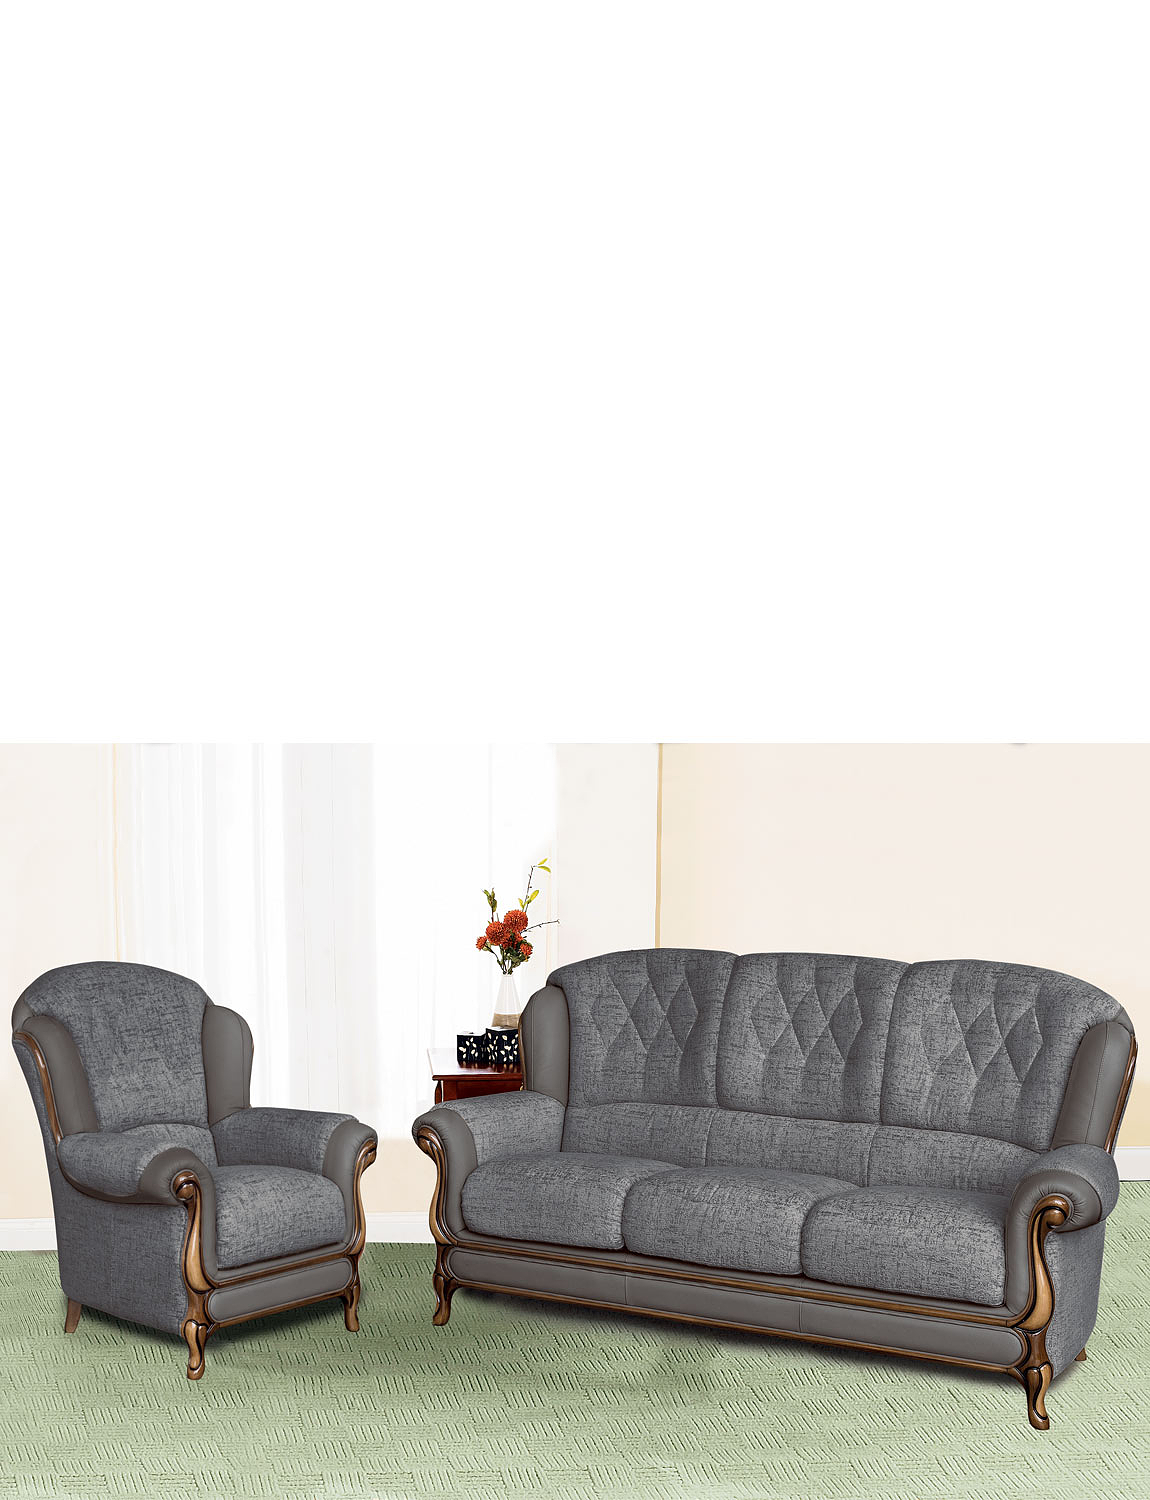 Queen Anne Suite - Three Seater Plus One Chair